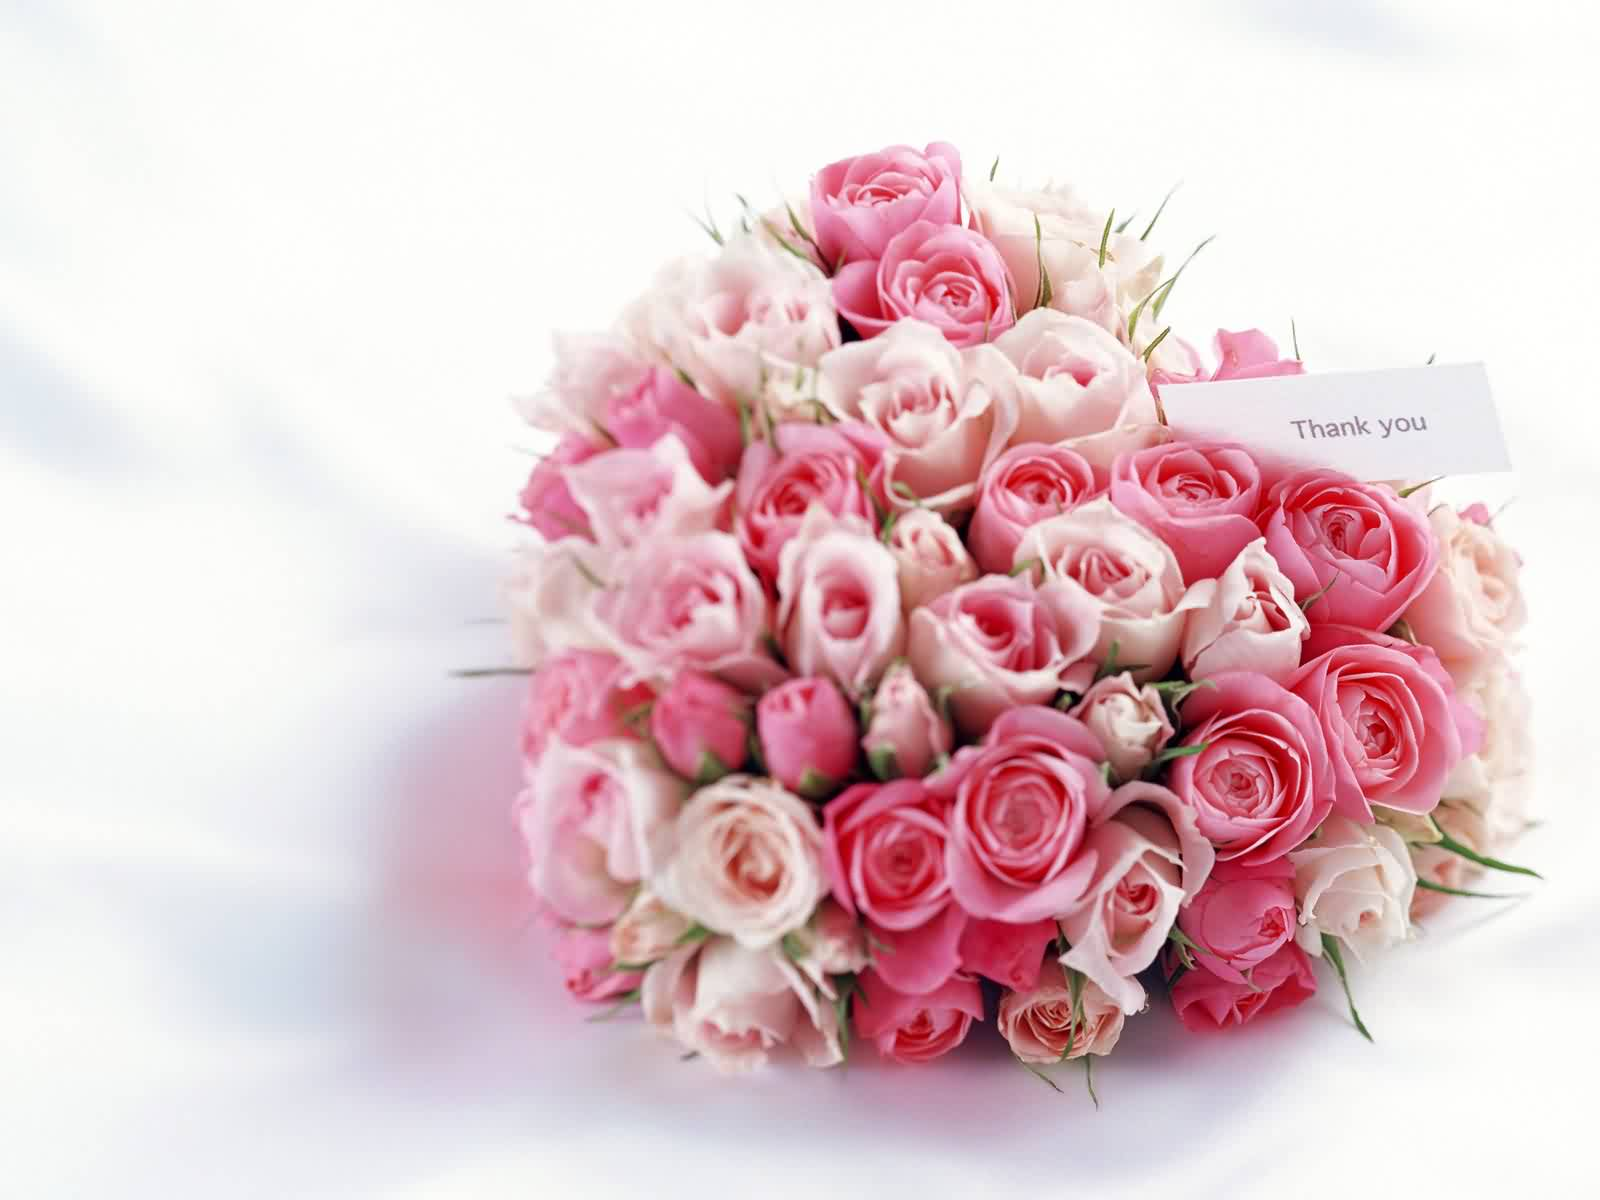 Free Download 44 Romantic Valentine Day Hq Wallpapers 2013 Free